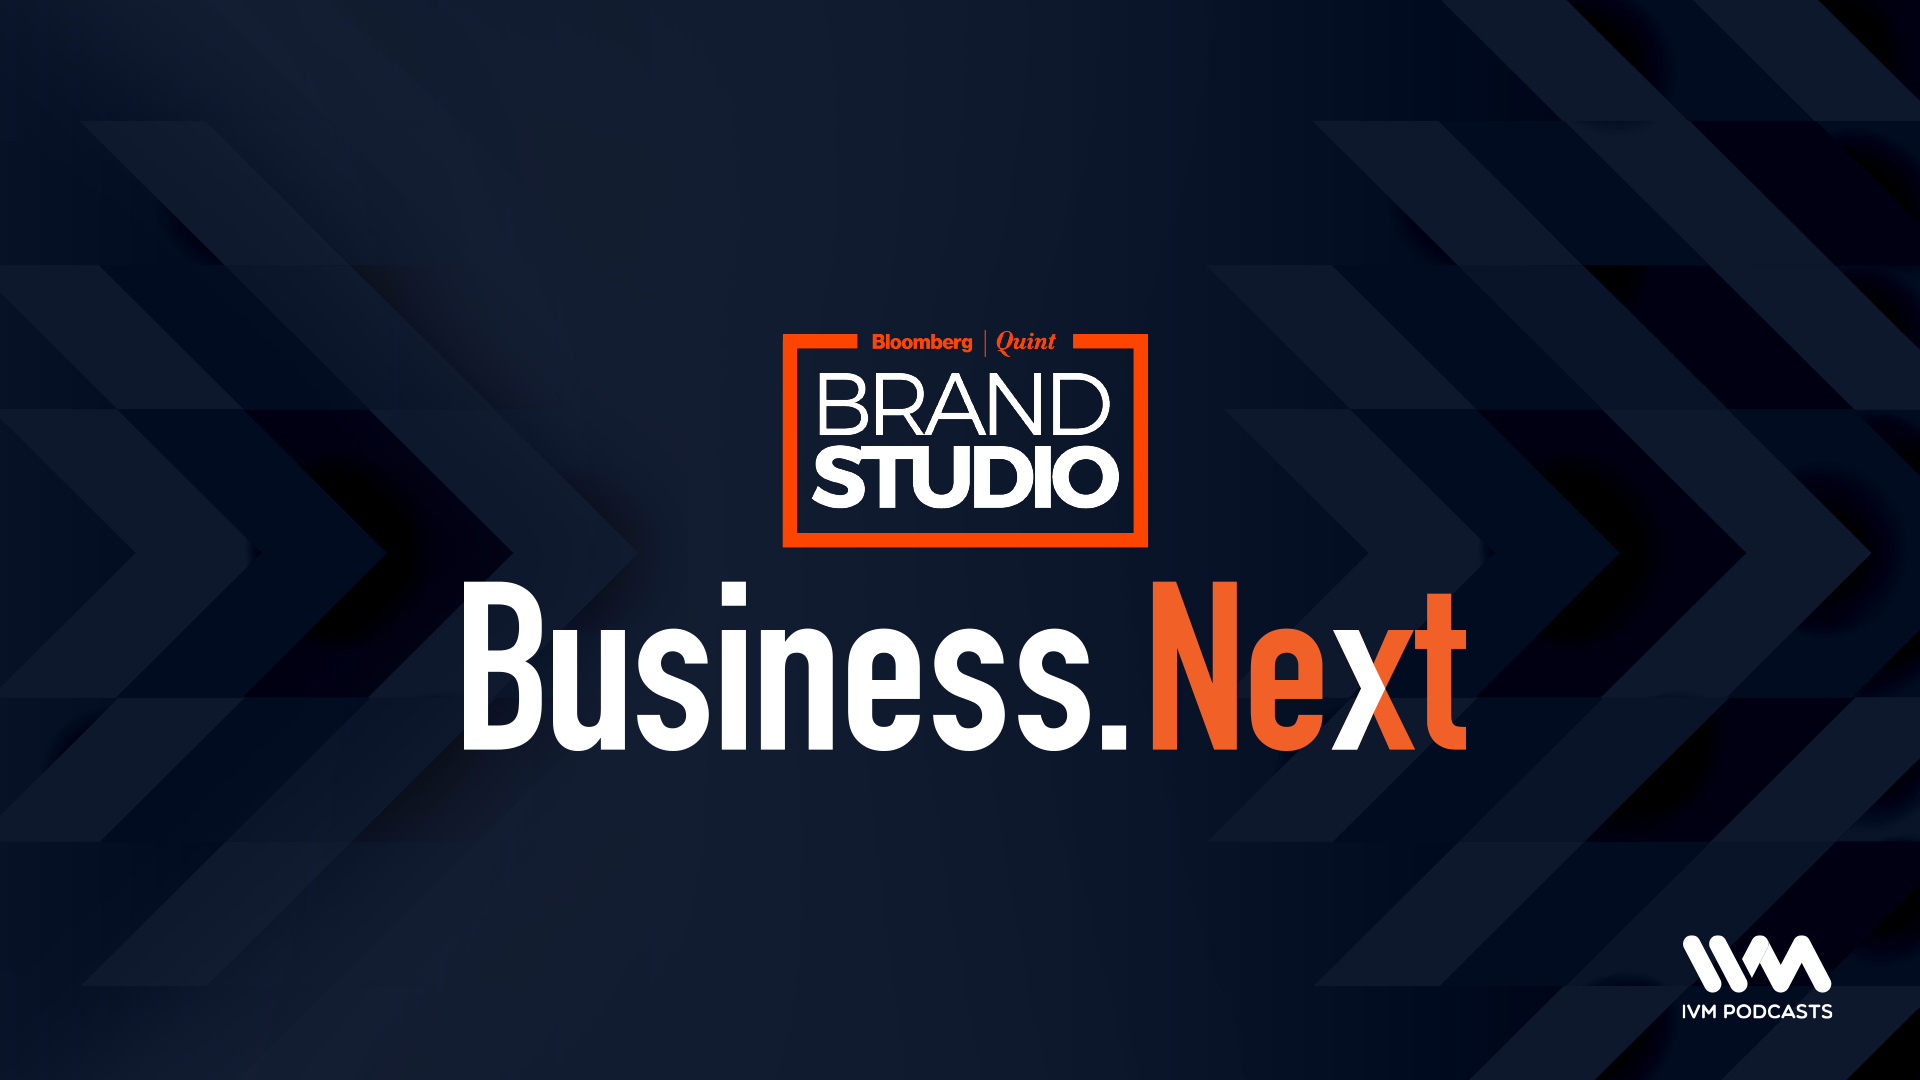 Business_Next_Show_Banners_1920X1080.png